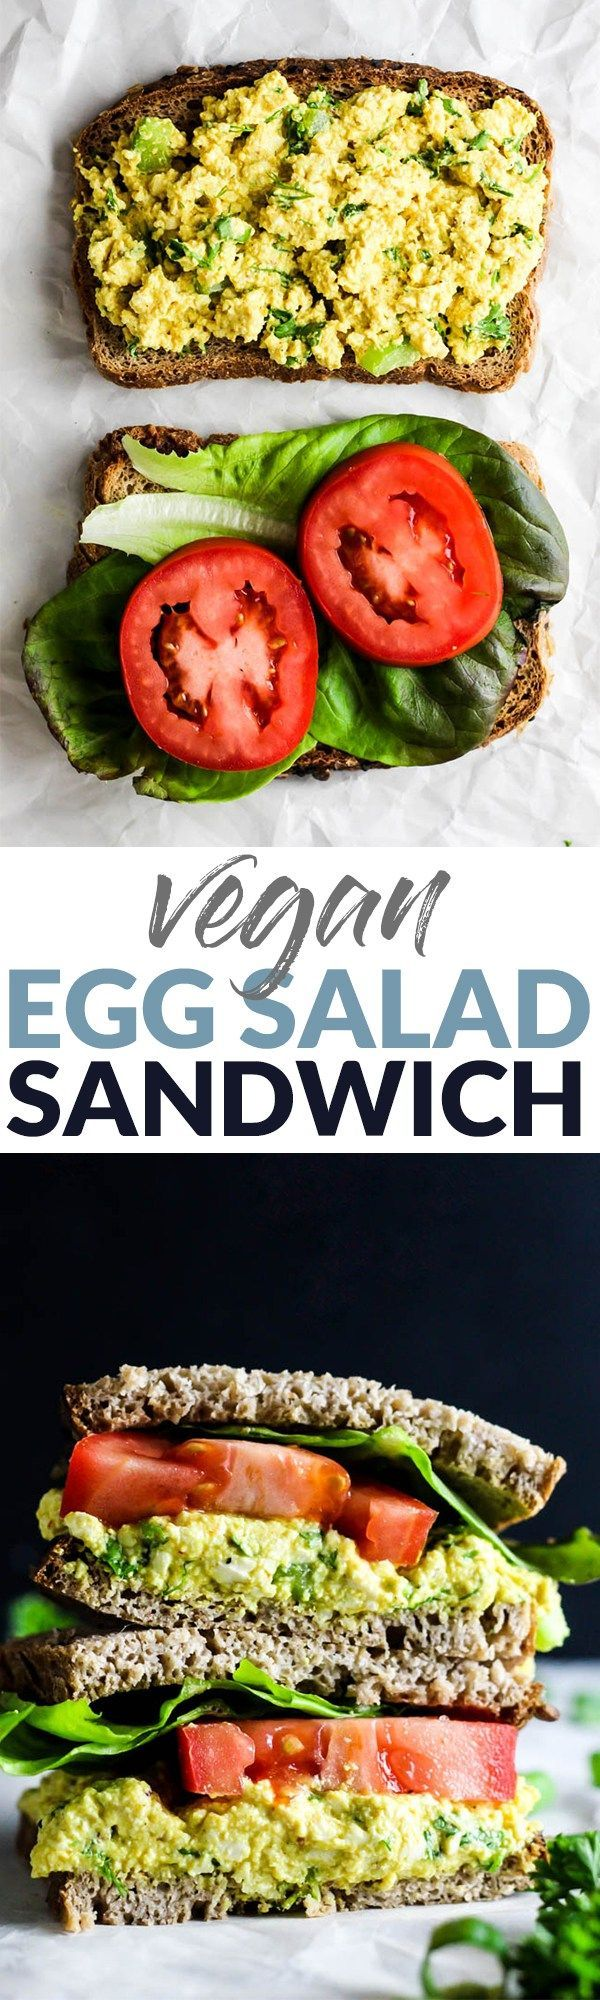 Pack a Vegan Egg Salad Sandwich for your lunch for a flavorful, simple meal! This plant-based version of the classic is even more delicious & nutritious. @soyfoods #soyfoodsmonth #tastysoyfoods #ad